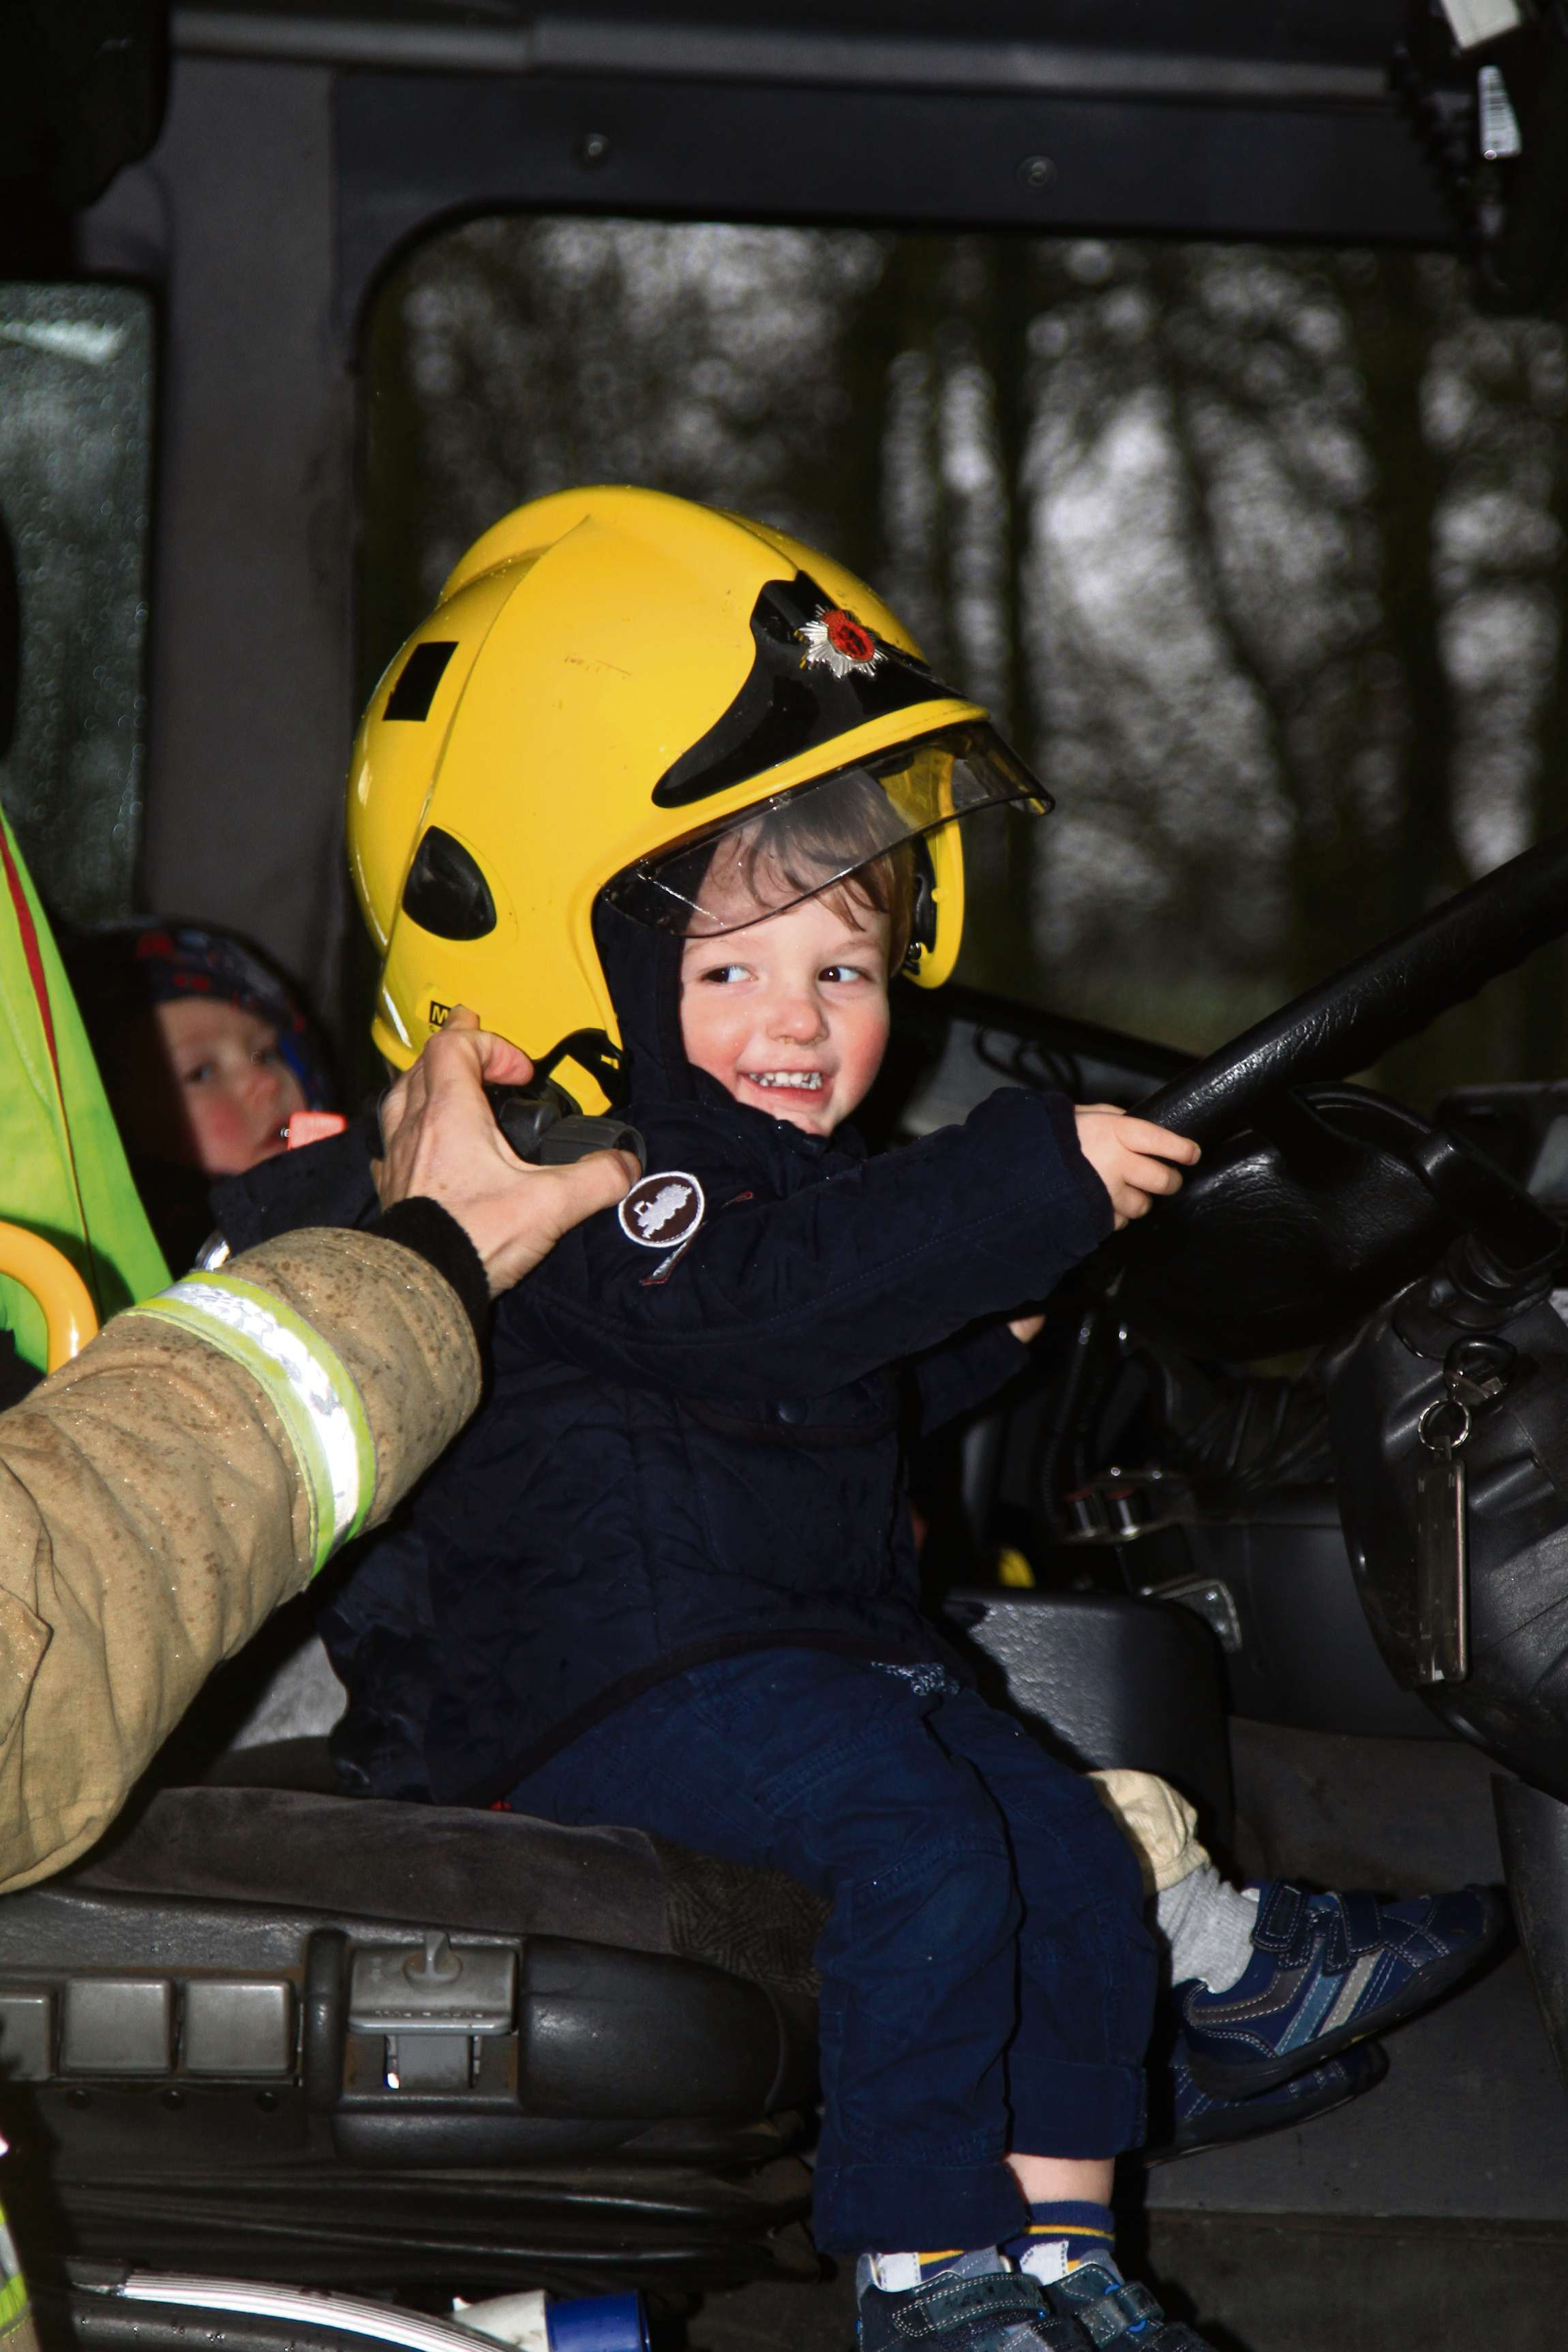 Firefighters hot topic at nursery